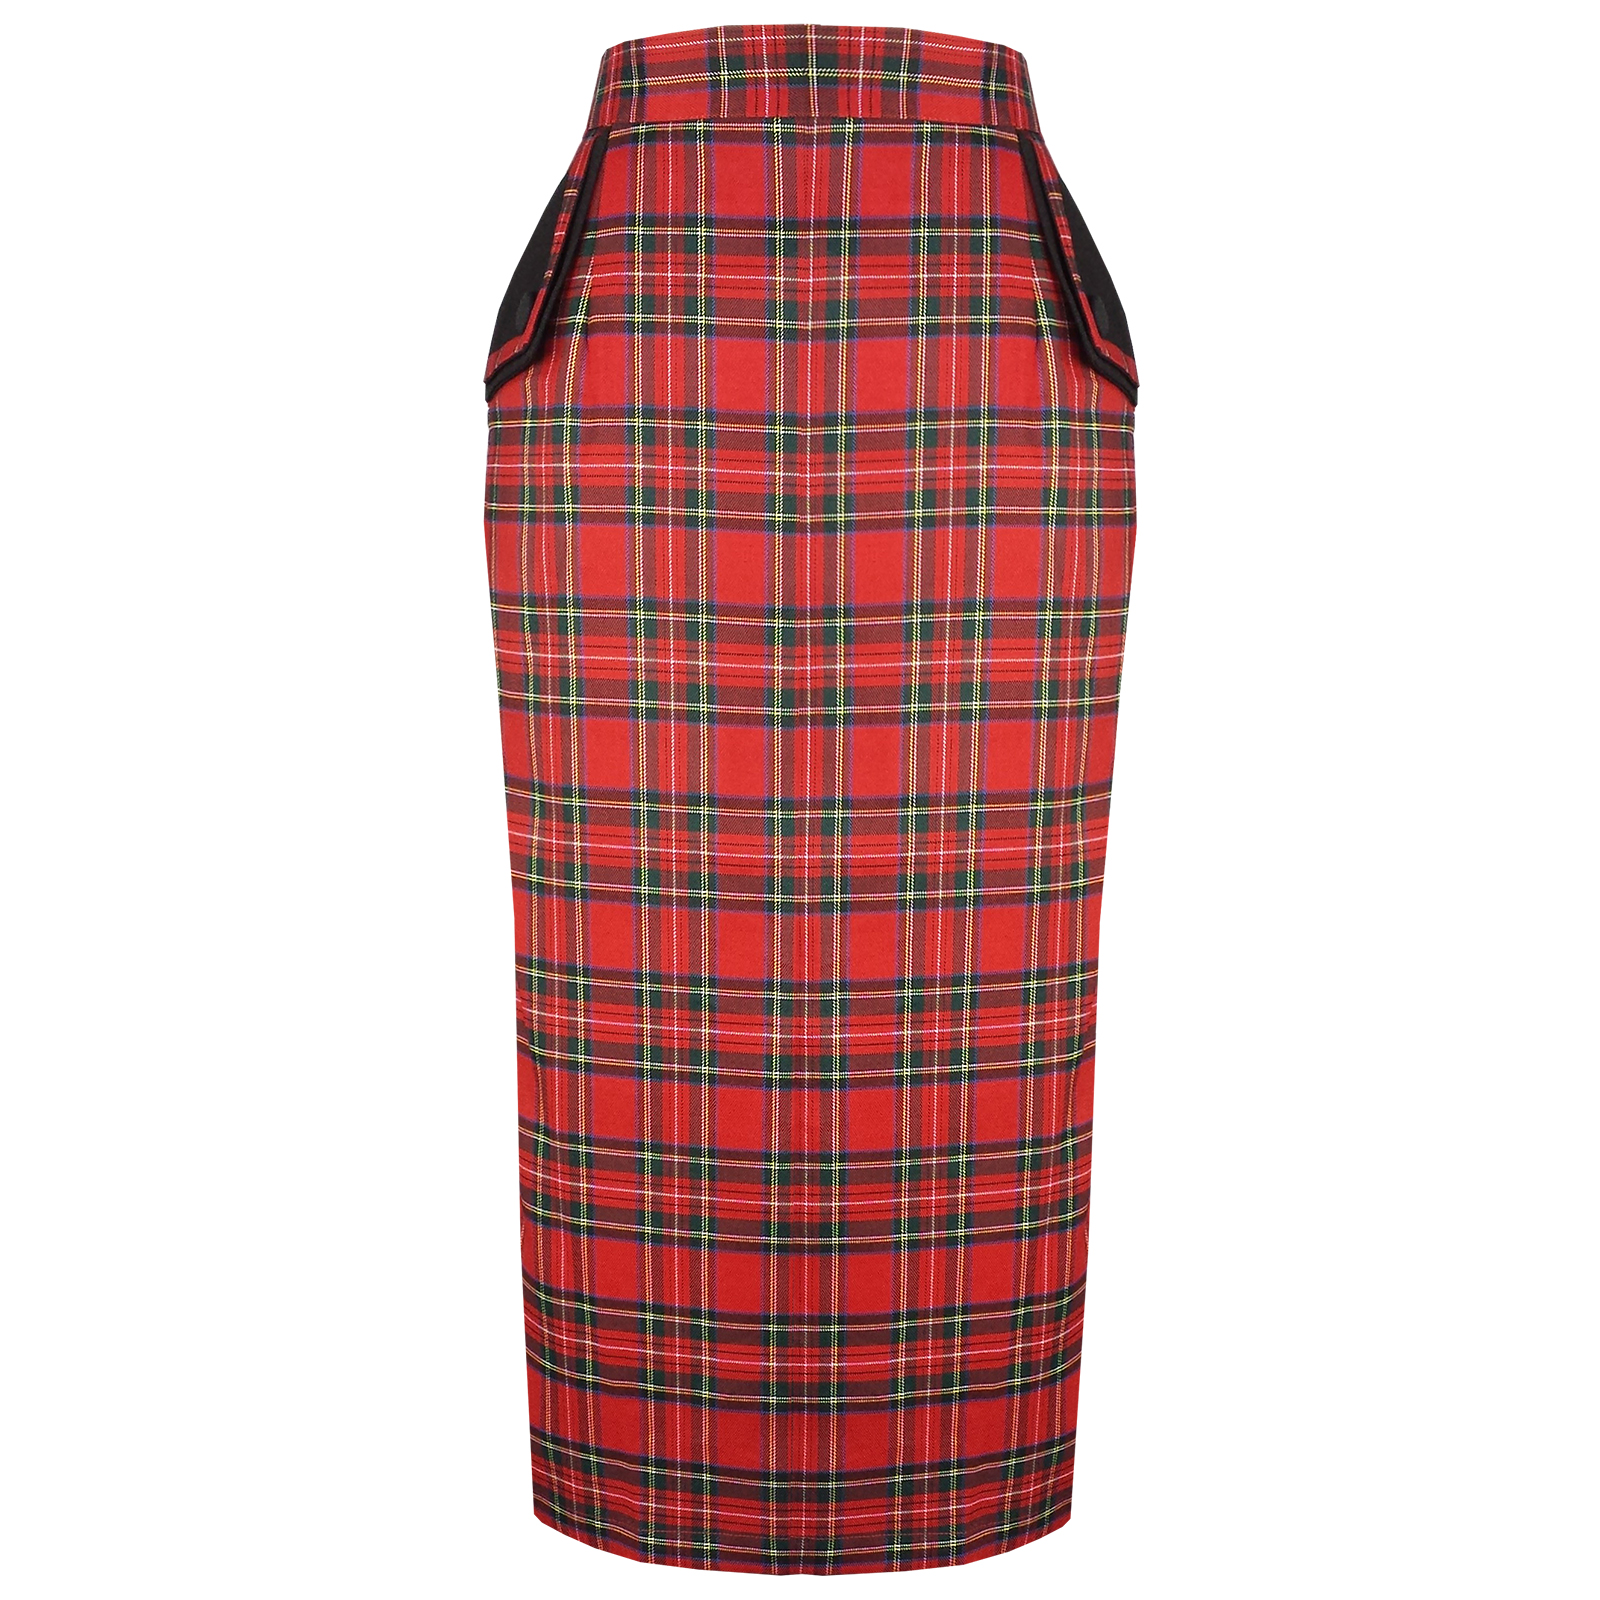 Cheap plaid skirts are also fluted, with the hip area flat, which hugs the body and shows off your curves. The style is as varied as its color combinations, which range from all darks in similar hues, to vibrant contrasting shades of black, gray and white, or orange, black and yellow, with red accents.